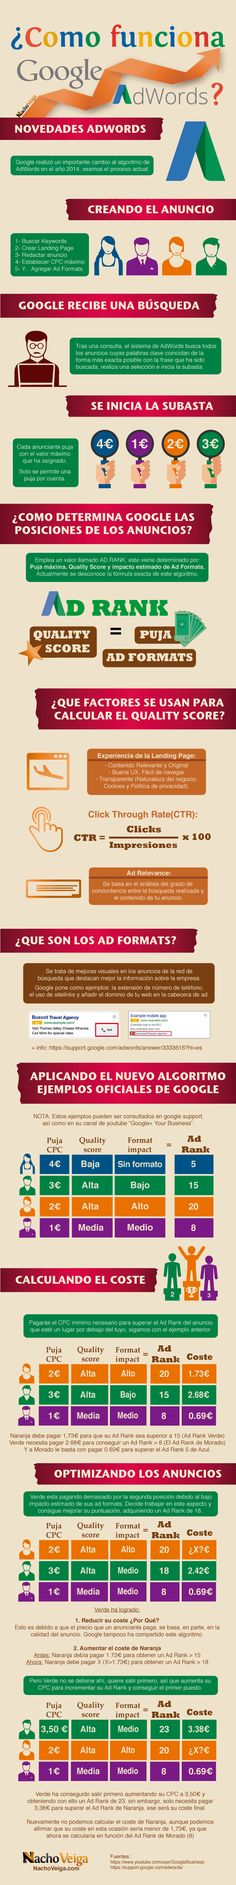 ¿Cómo funciona Google Adwords? #infografia #infographic #GoogleAdwords